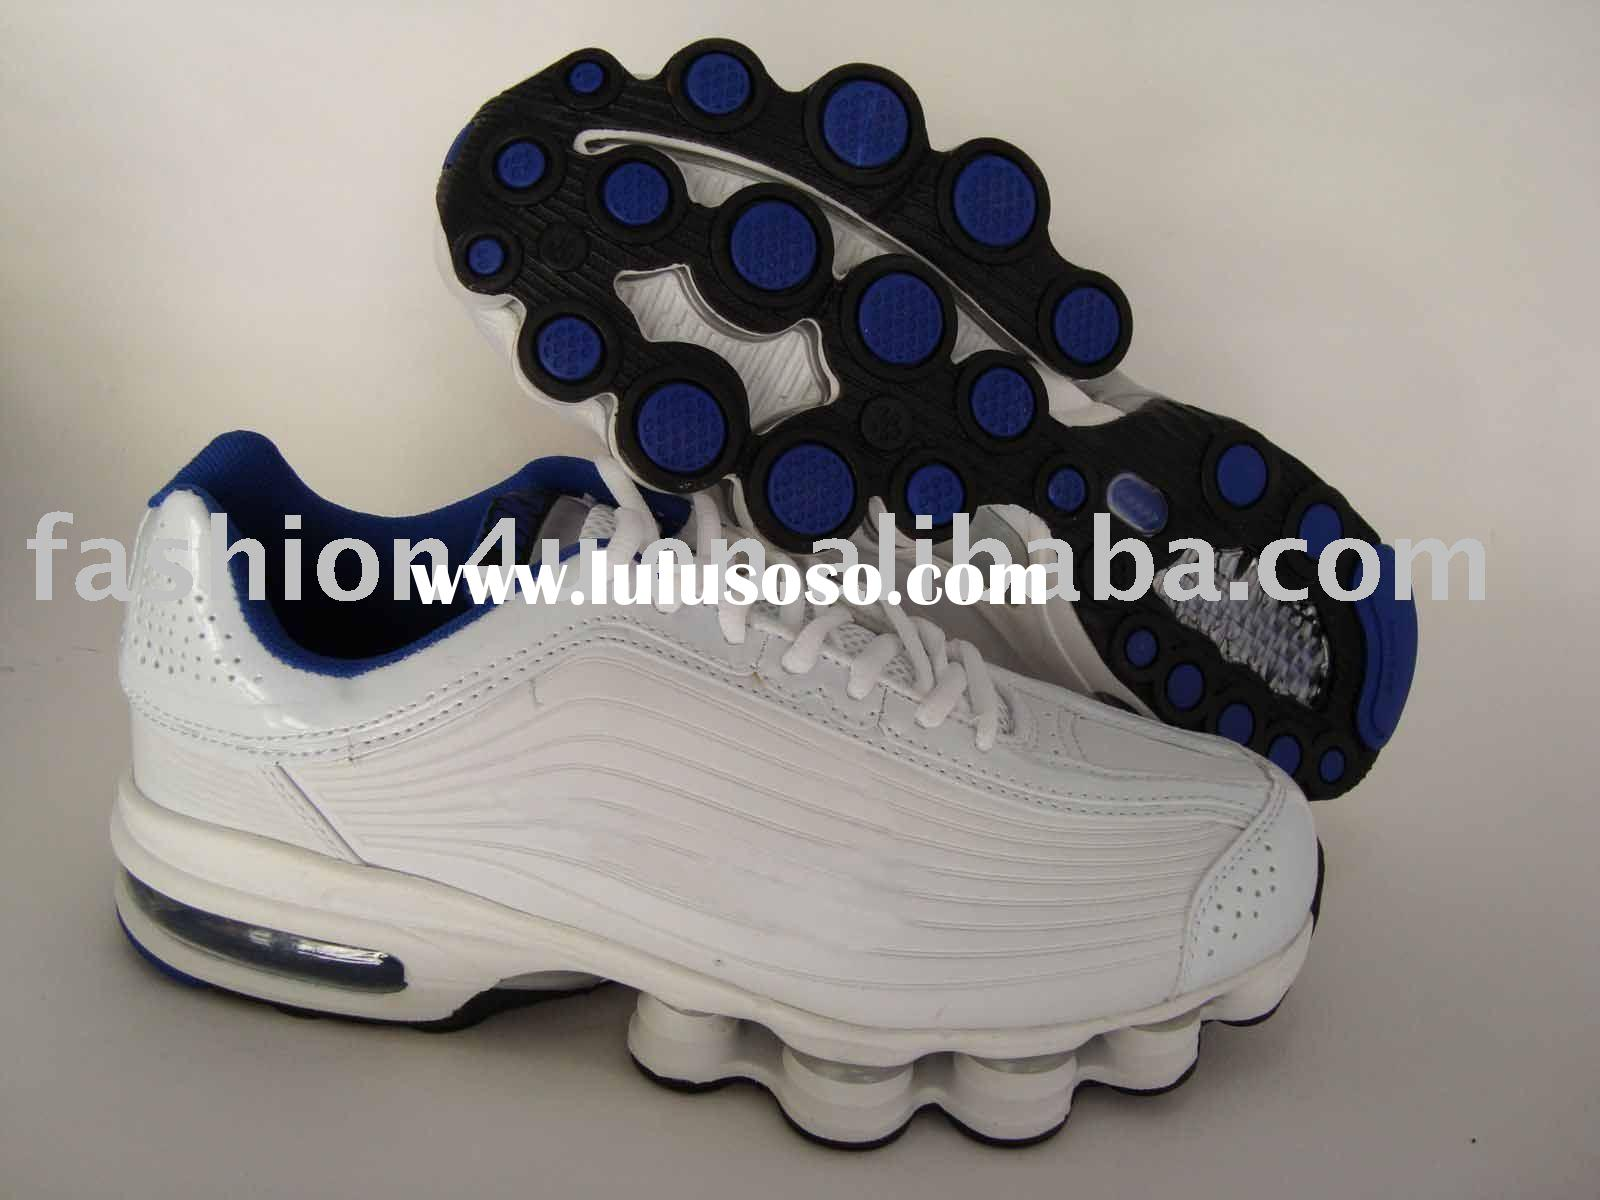 Men's Sneakers Sports Shoes White